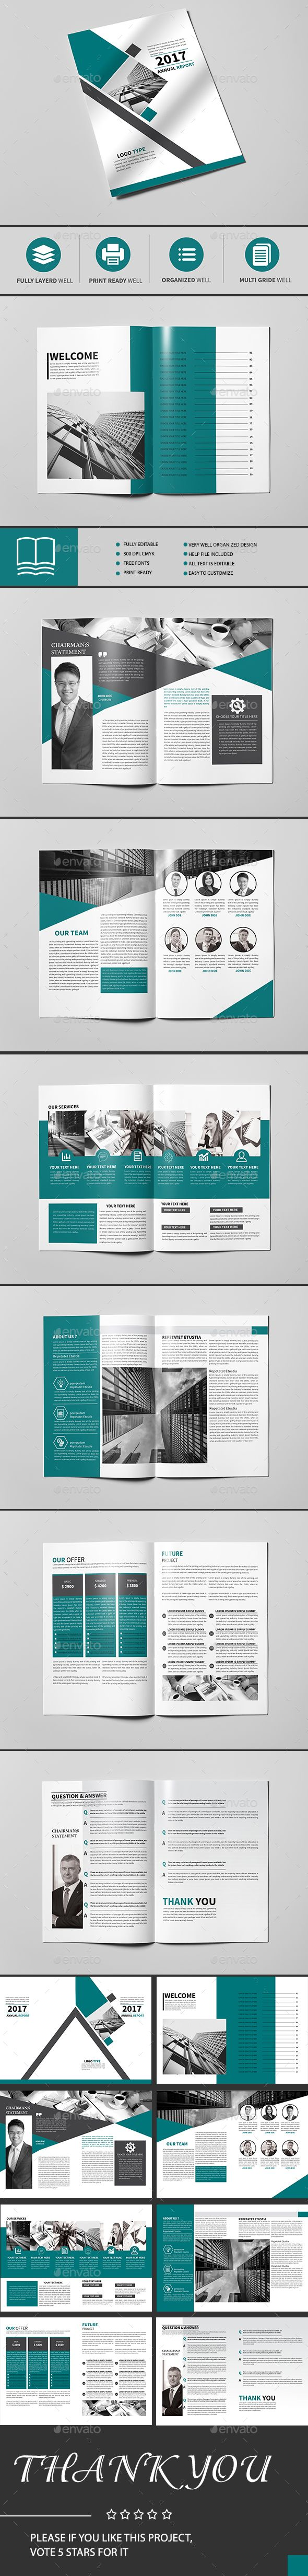 Corporate Brochure Template InDesign INDD | Brochure Templates ...